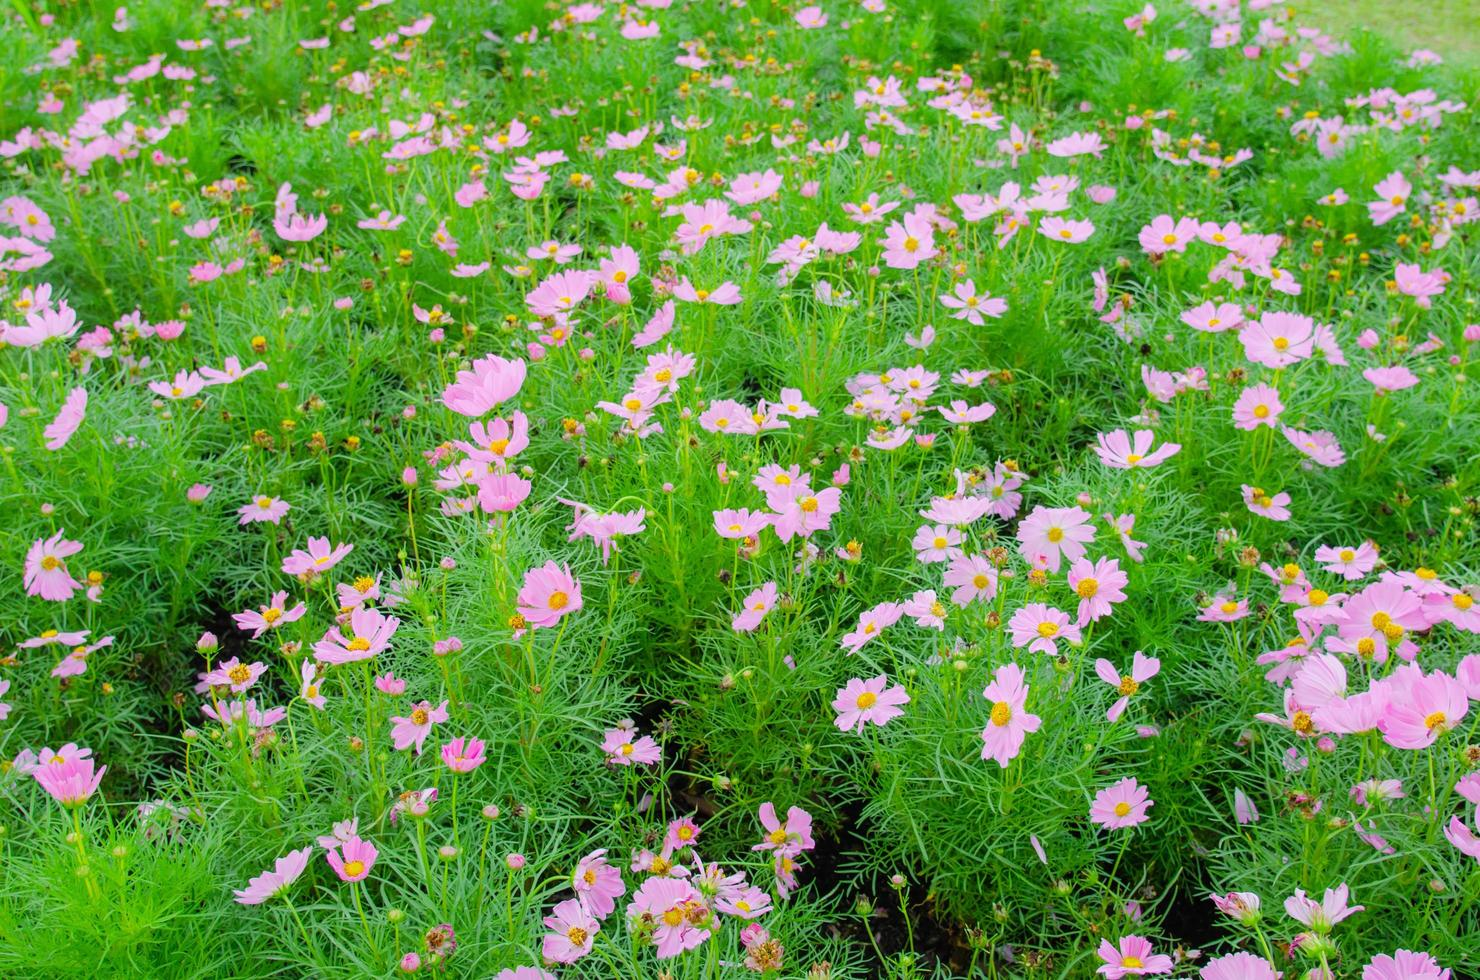 Pink flowers in the garden photo